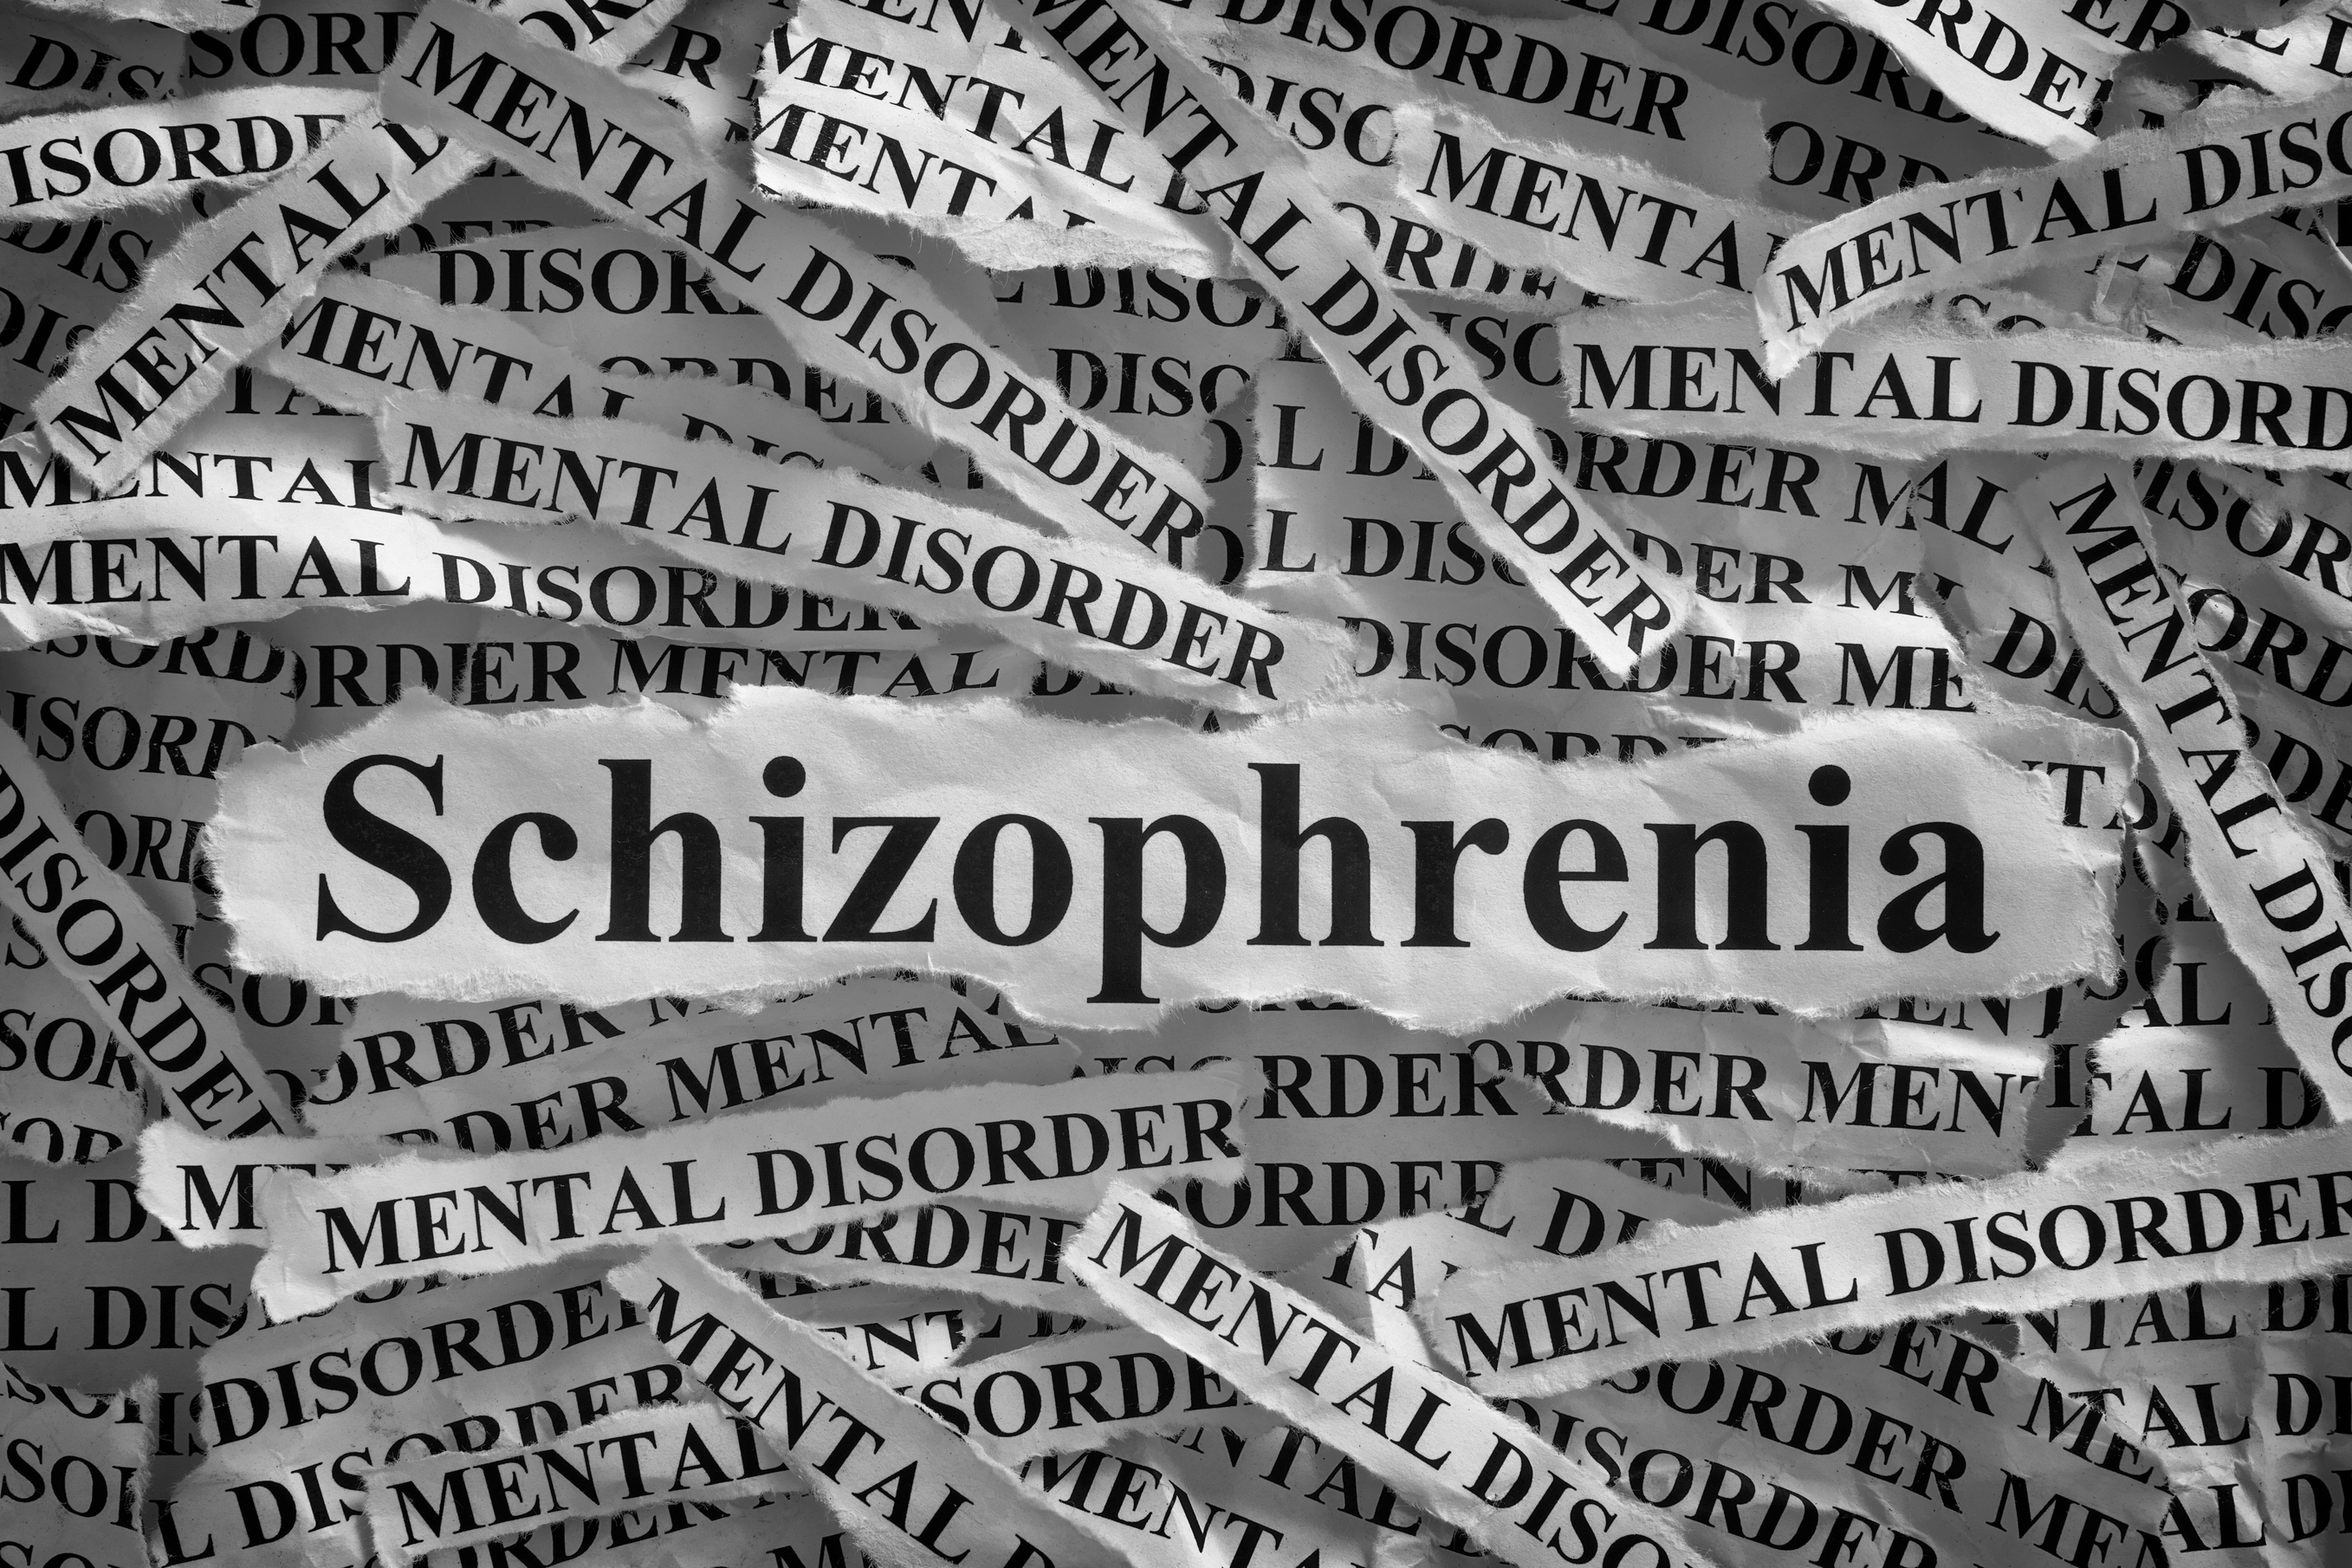 How can I deal with my mother's schizophrenia?